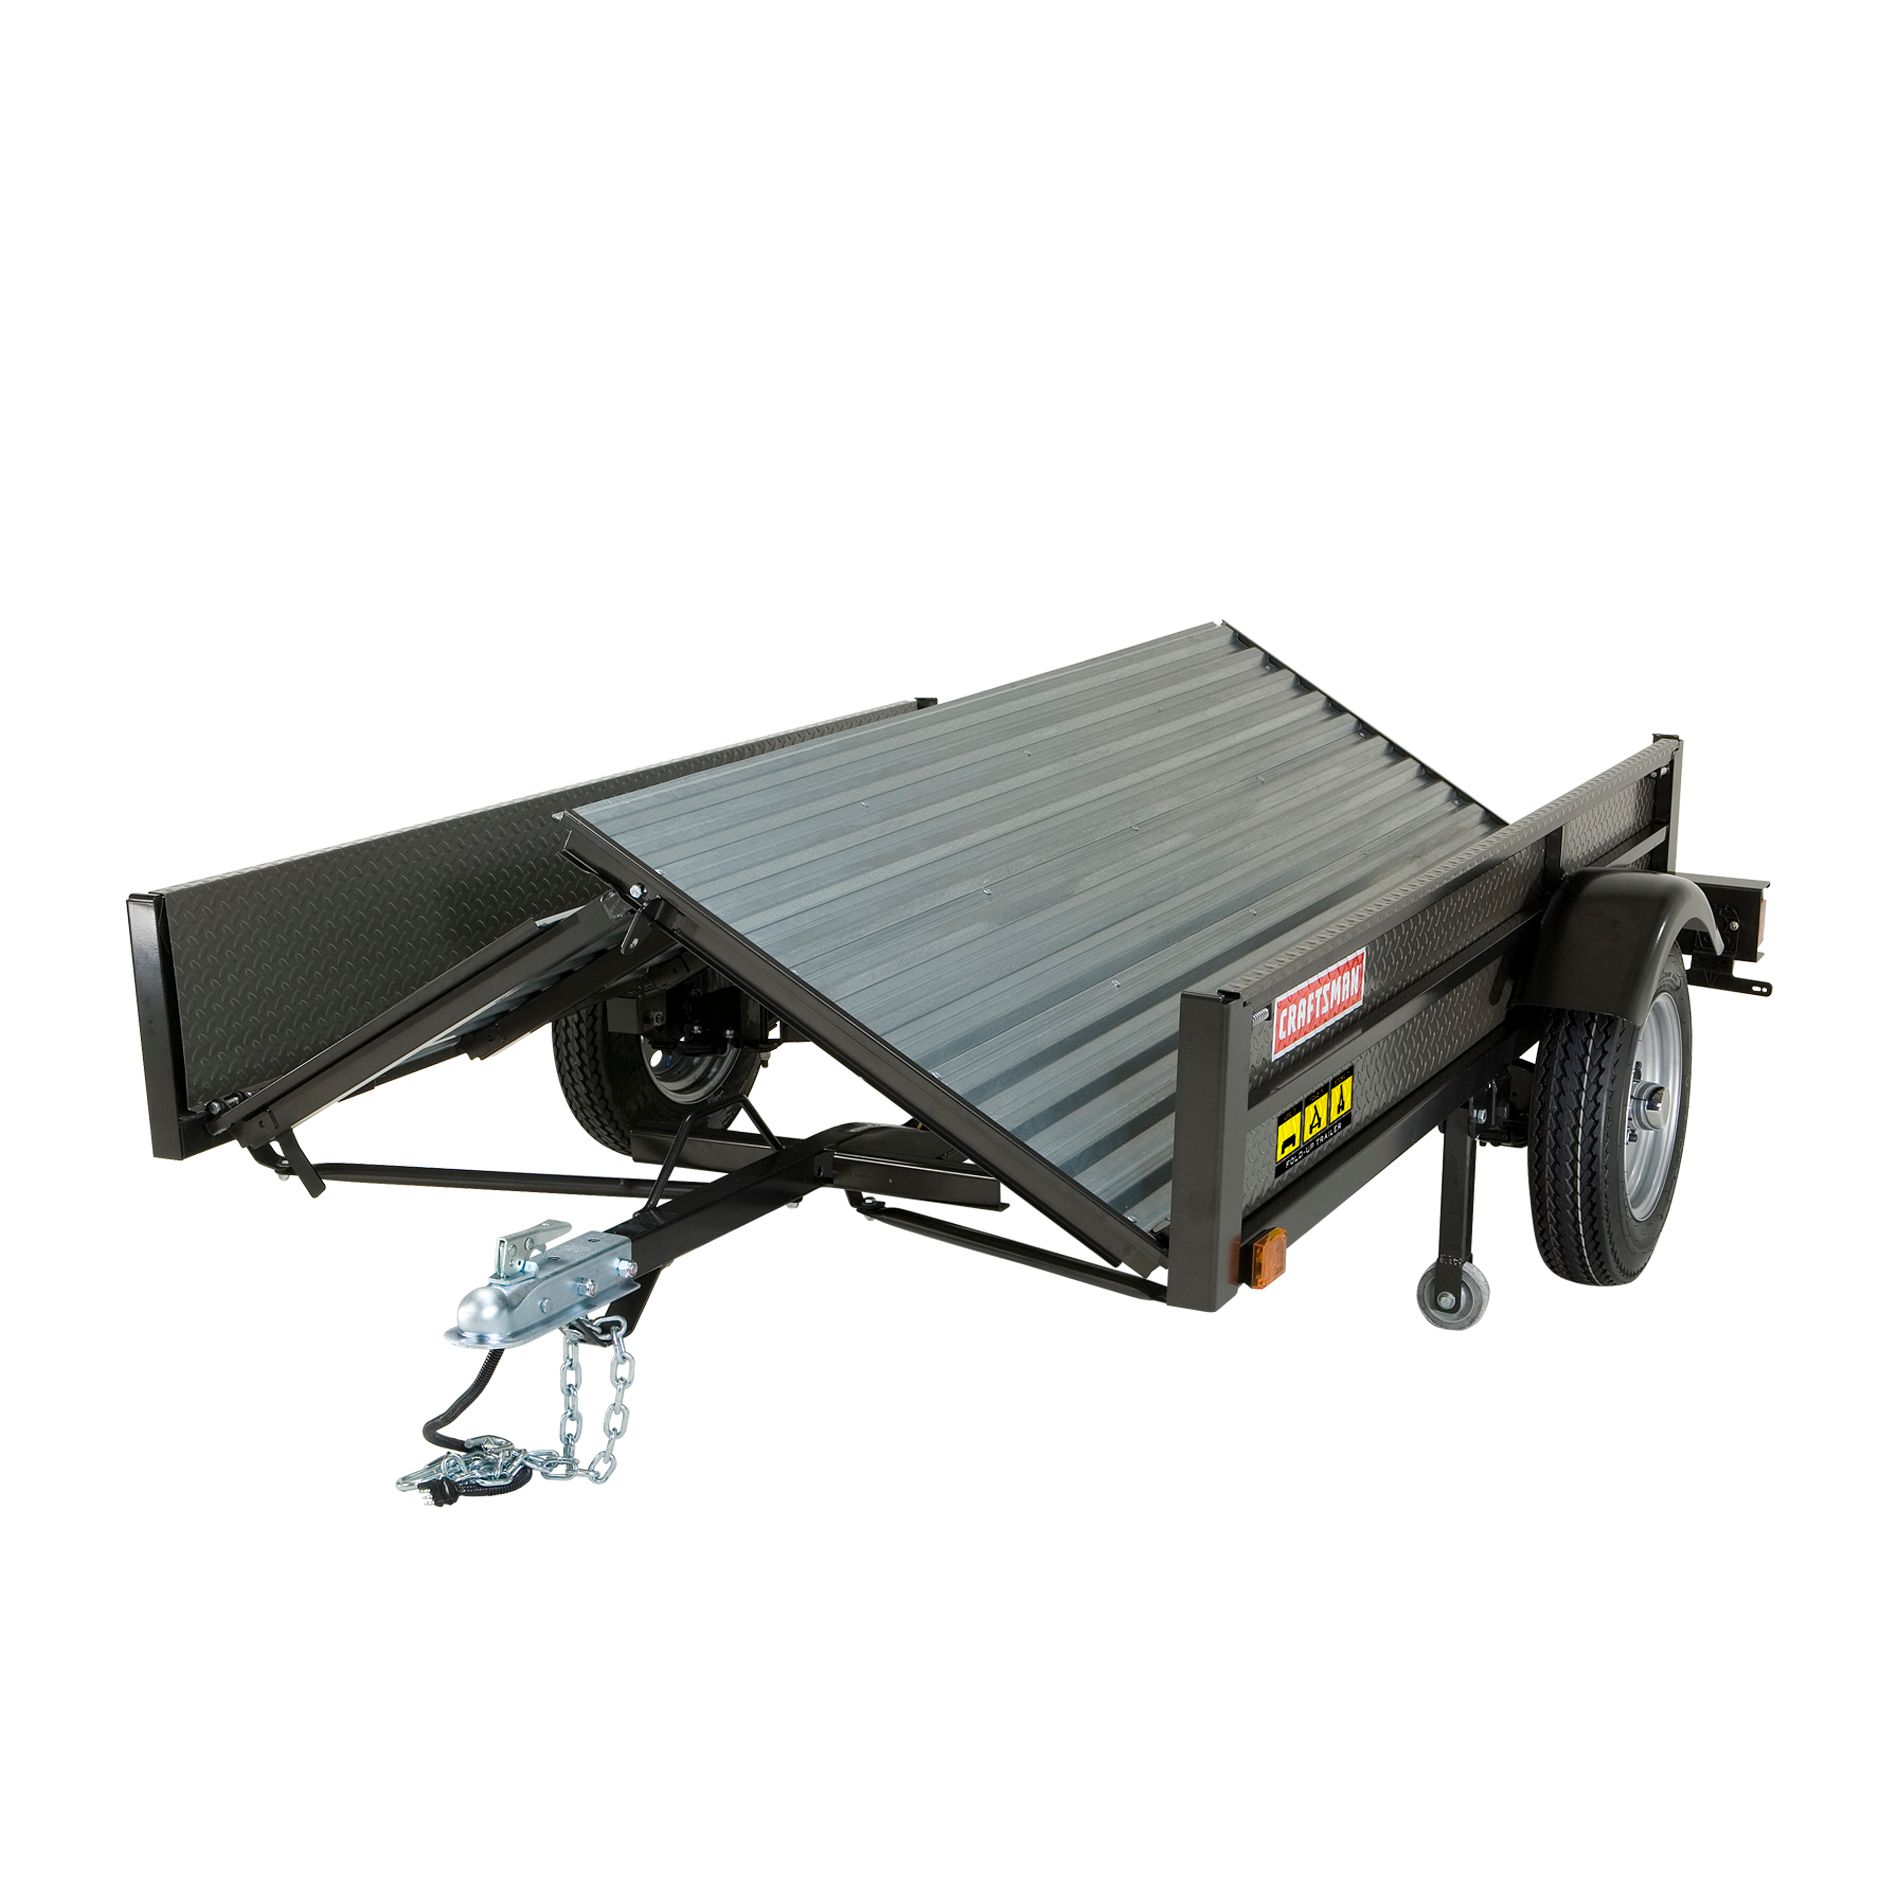 Craftsman Fold-Up Utility Trailer